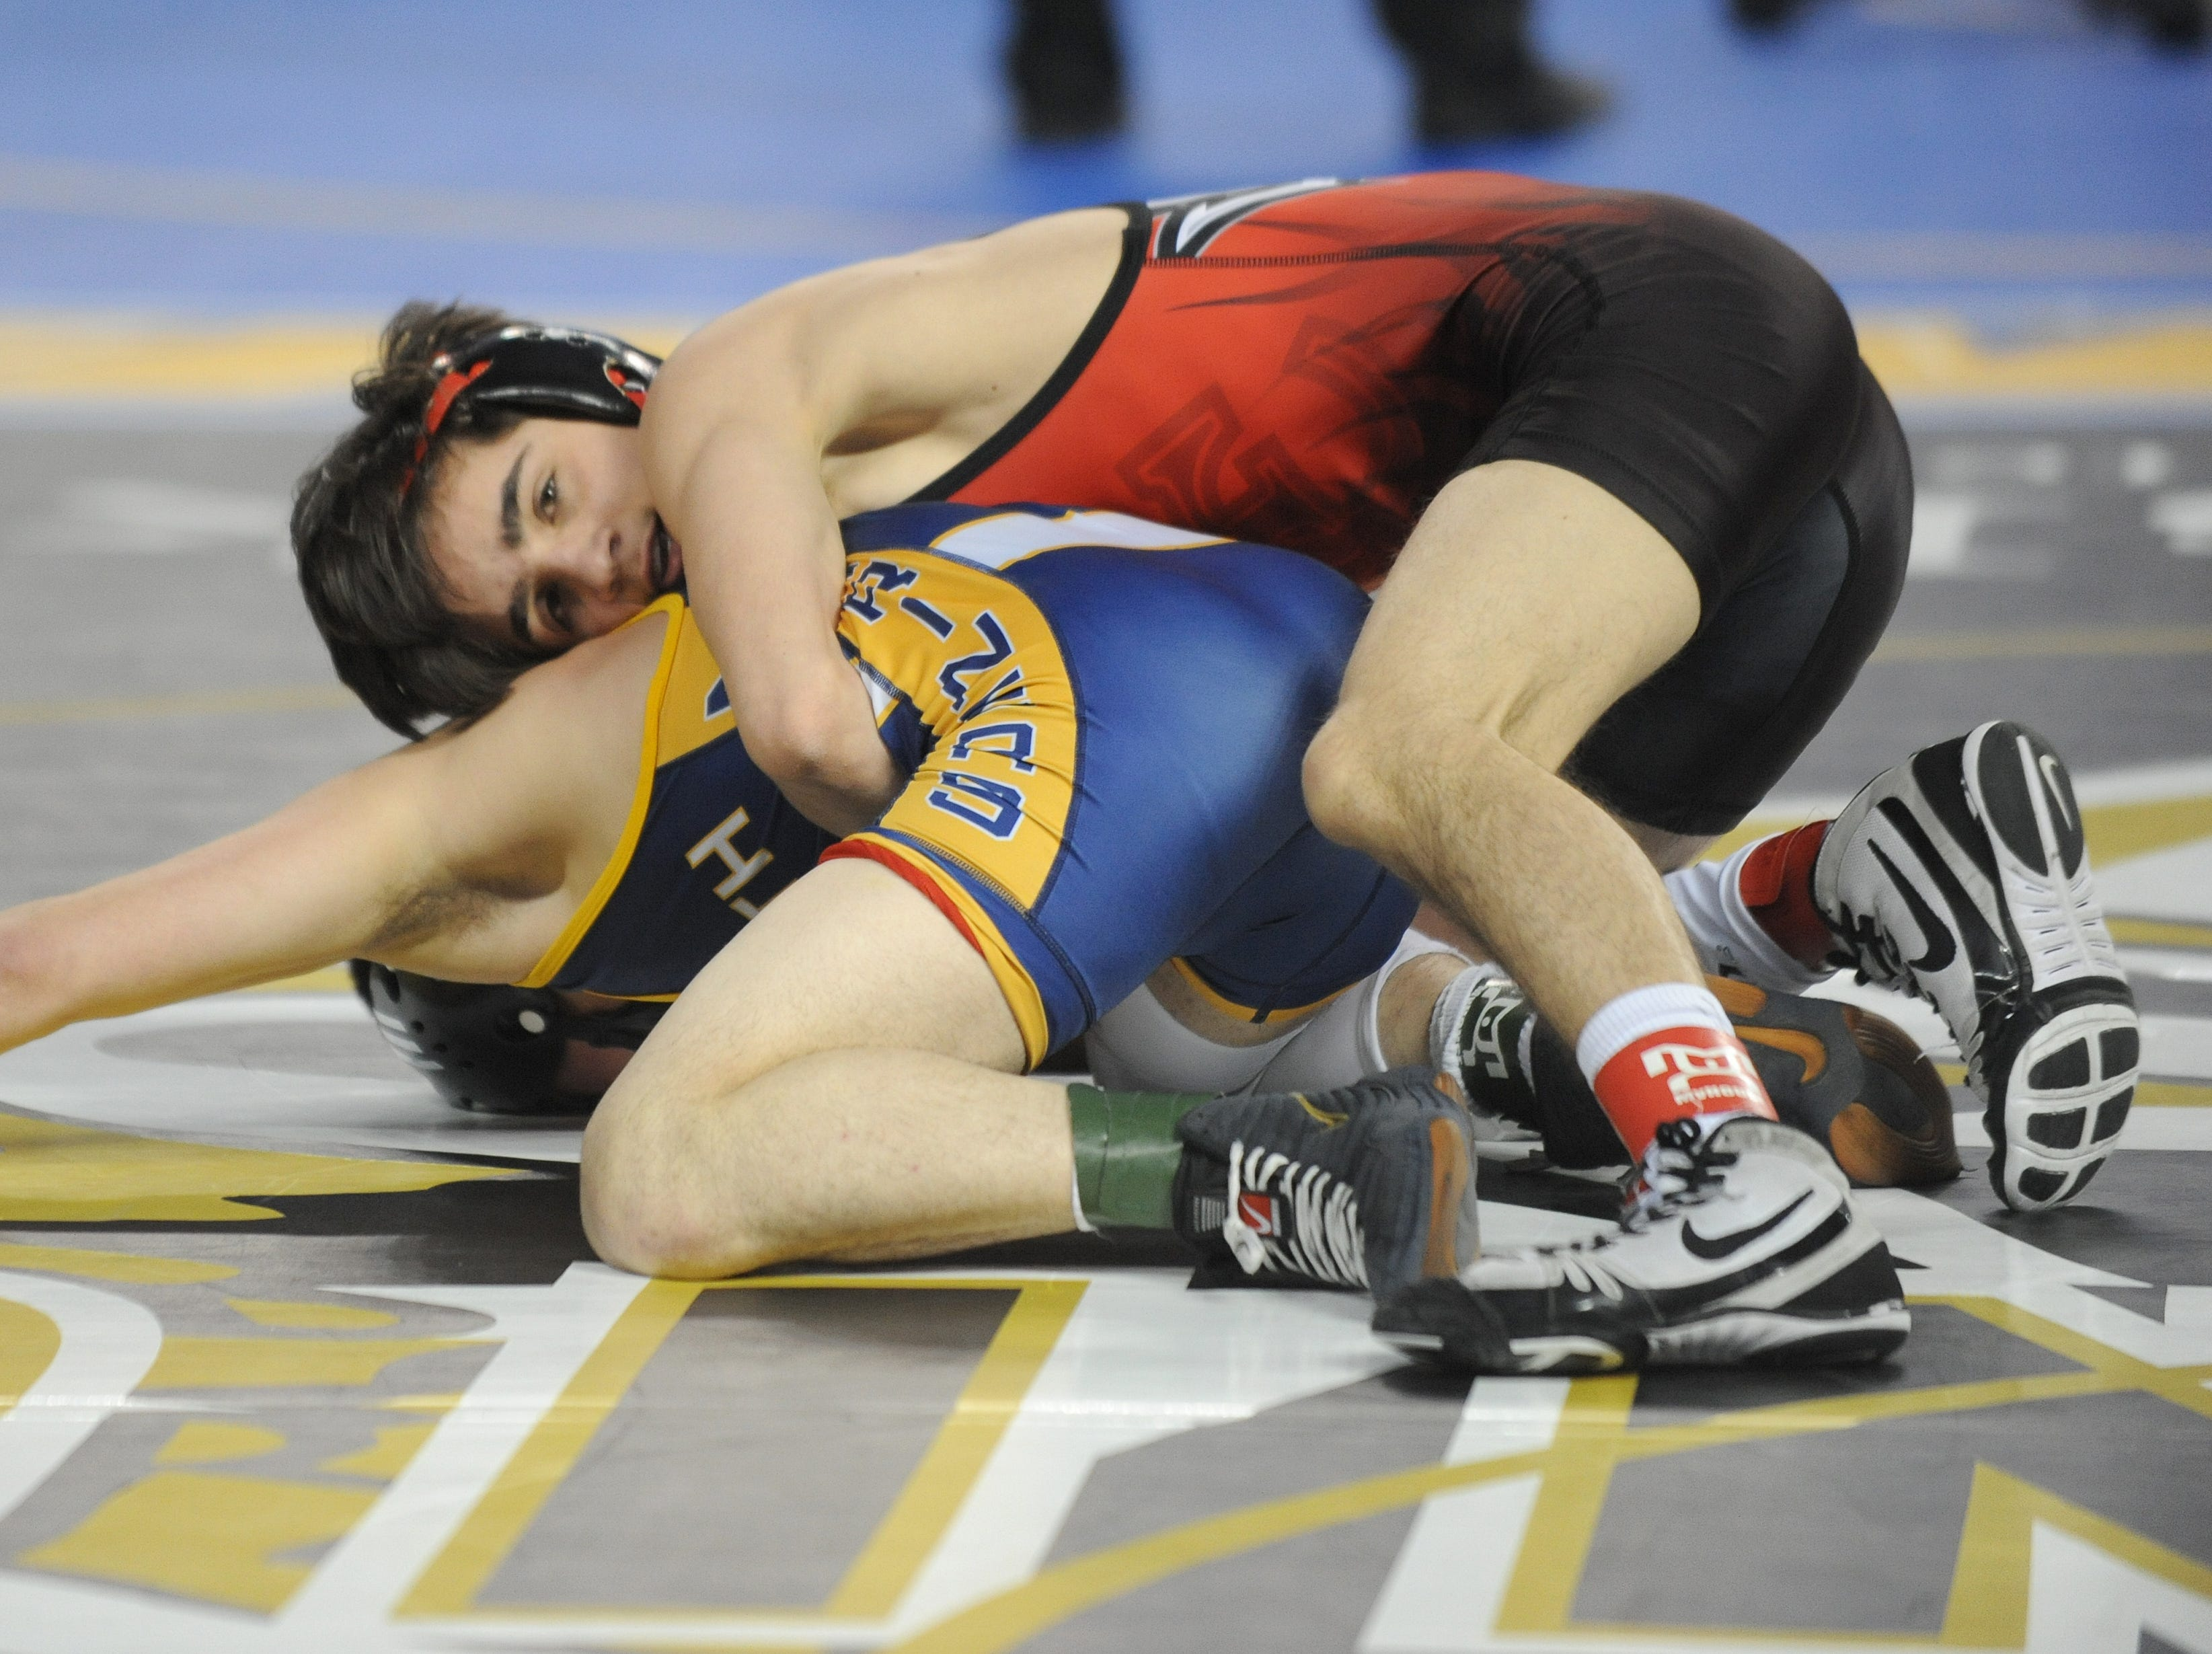 Hunterdon Central's Brett Ungar wrestles Toms River North's Louie Gagliardo in a 106-pound quarterfinal bout during the NJSIAA Individual Wrestling Championships at Boardwalk Hall in Atlantic City, Friday, March 1, 2019.